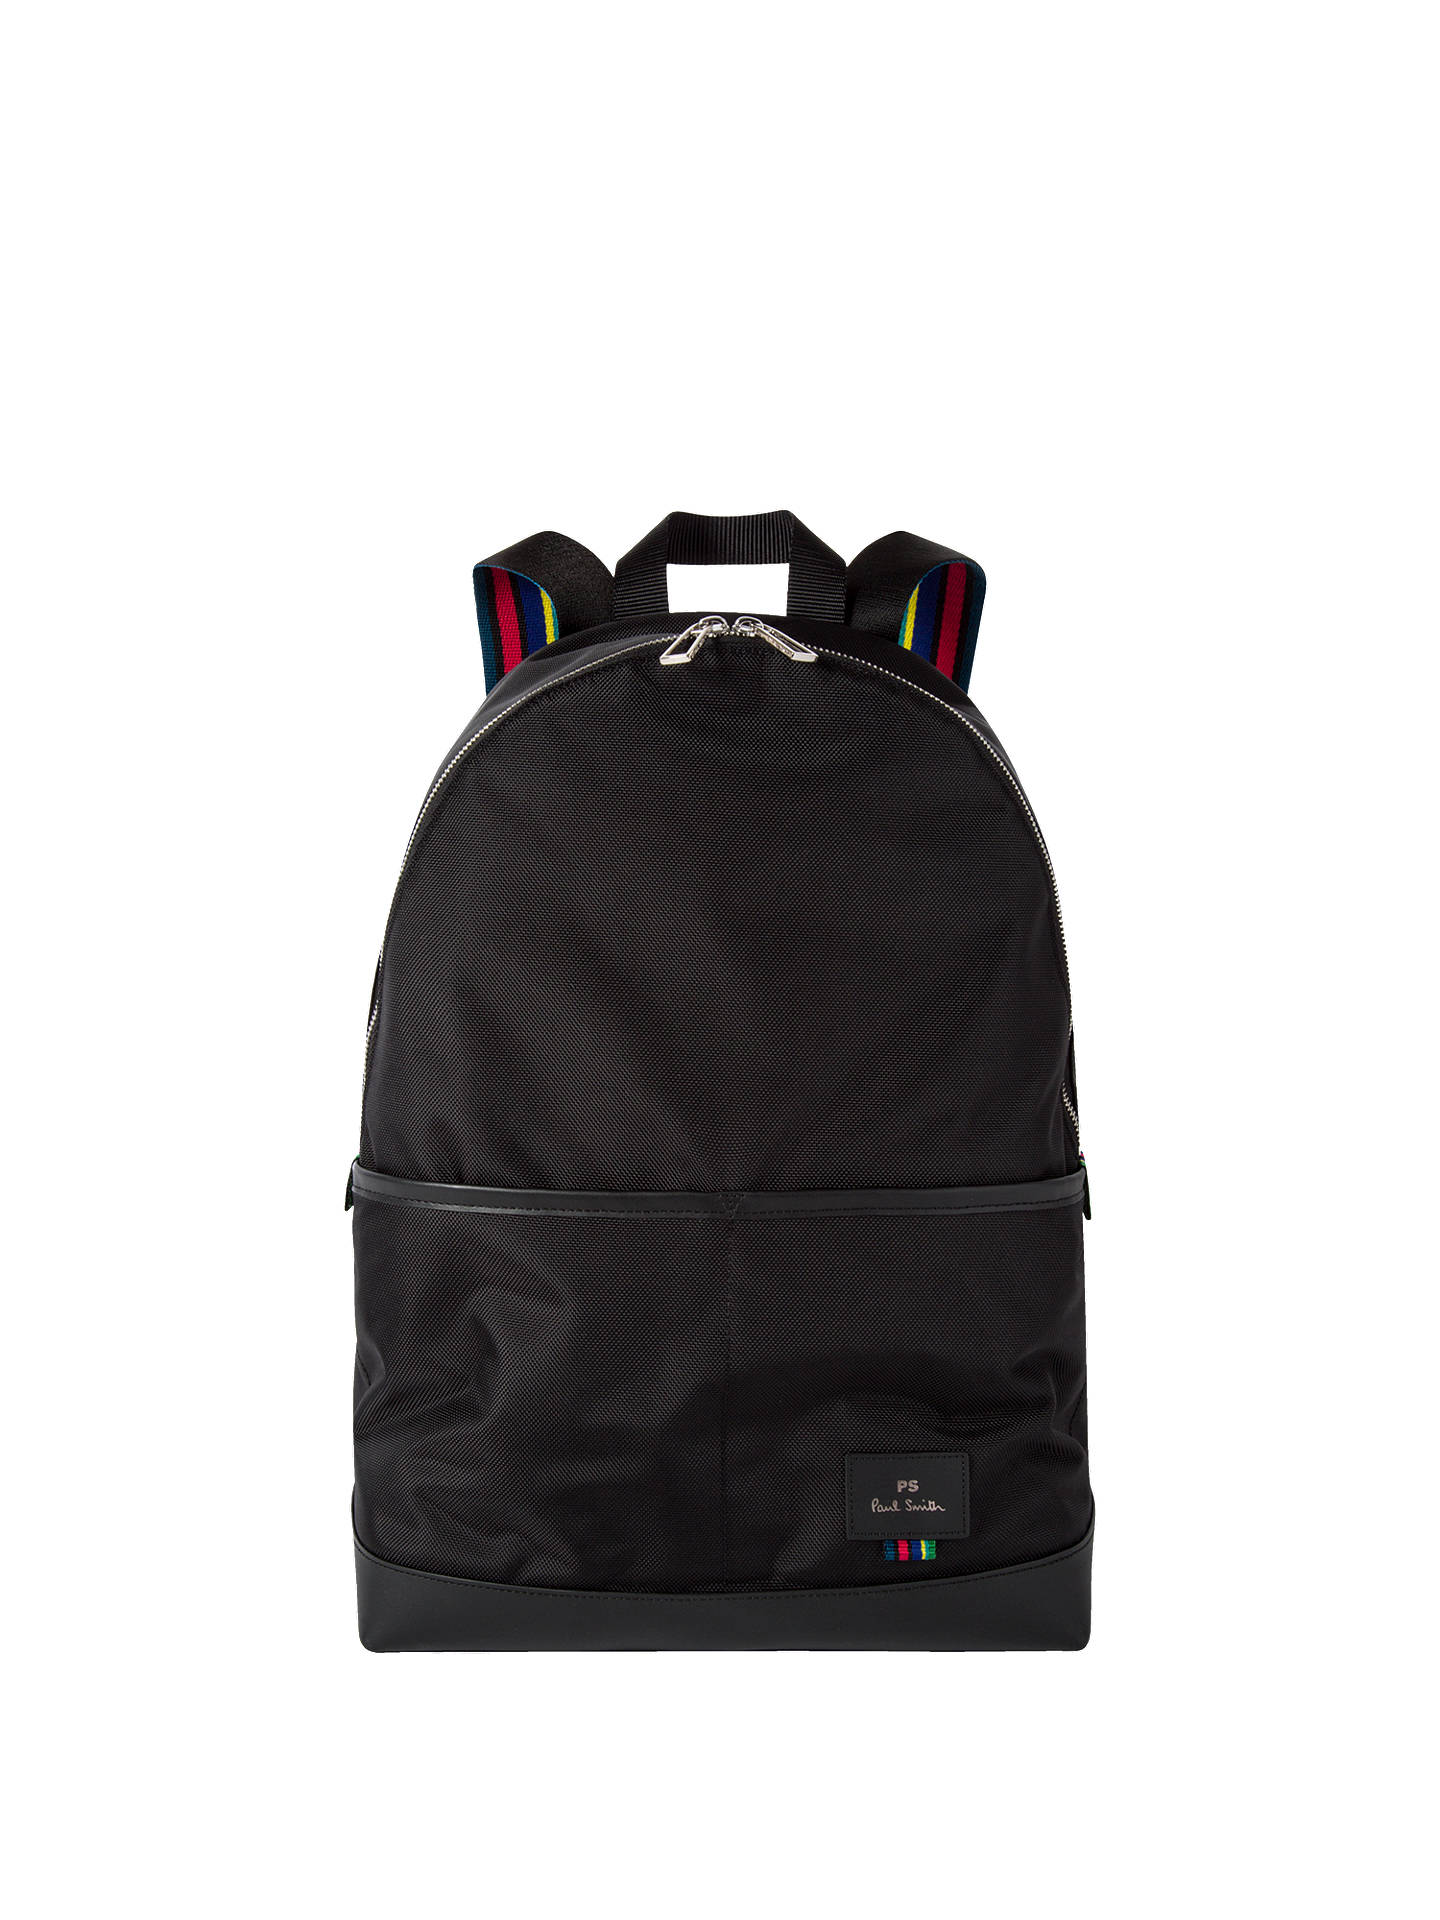 4cfca94f99 Buy PS Paul Smith Nylon Backpack